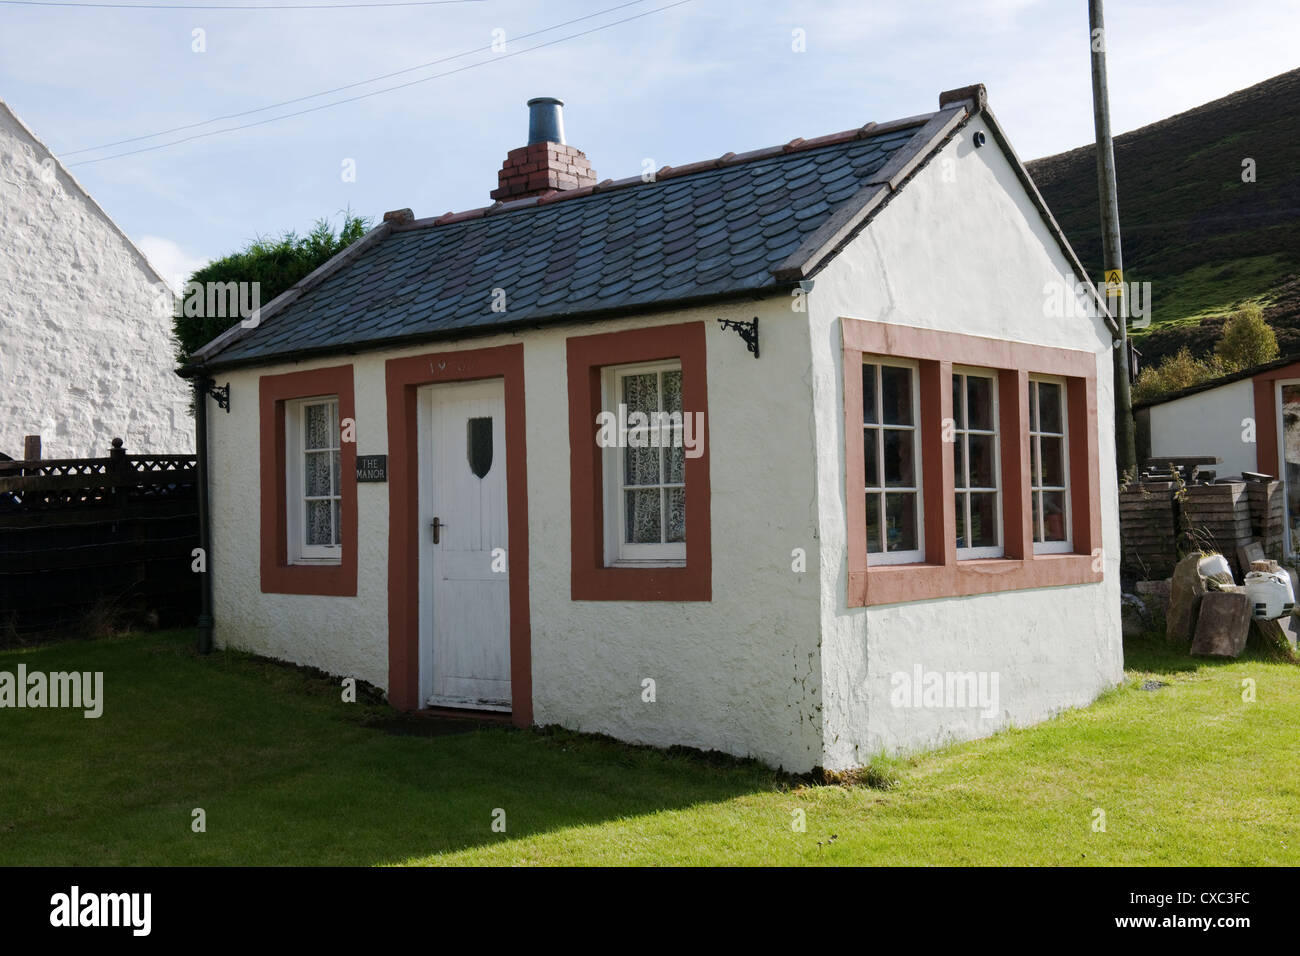 Miners Cottage, Wanlockhead, Dumfries and Galloway, Scotland -1 - Stock Image